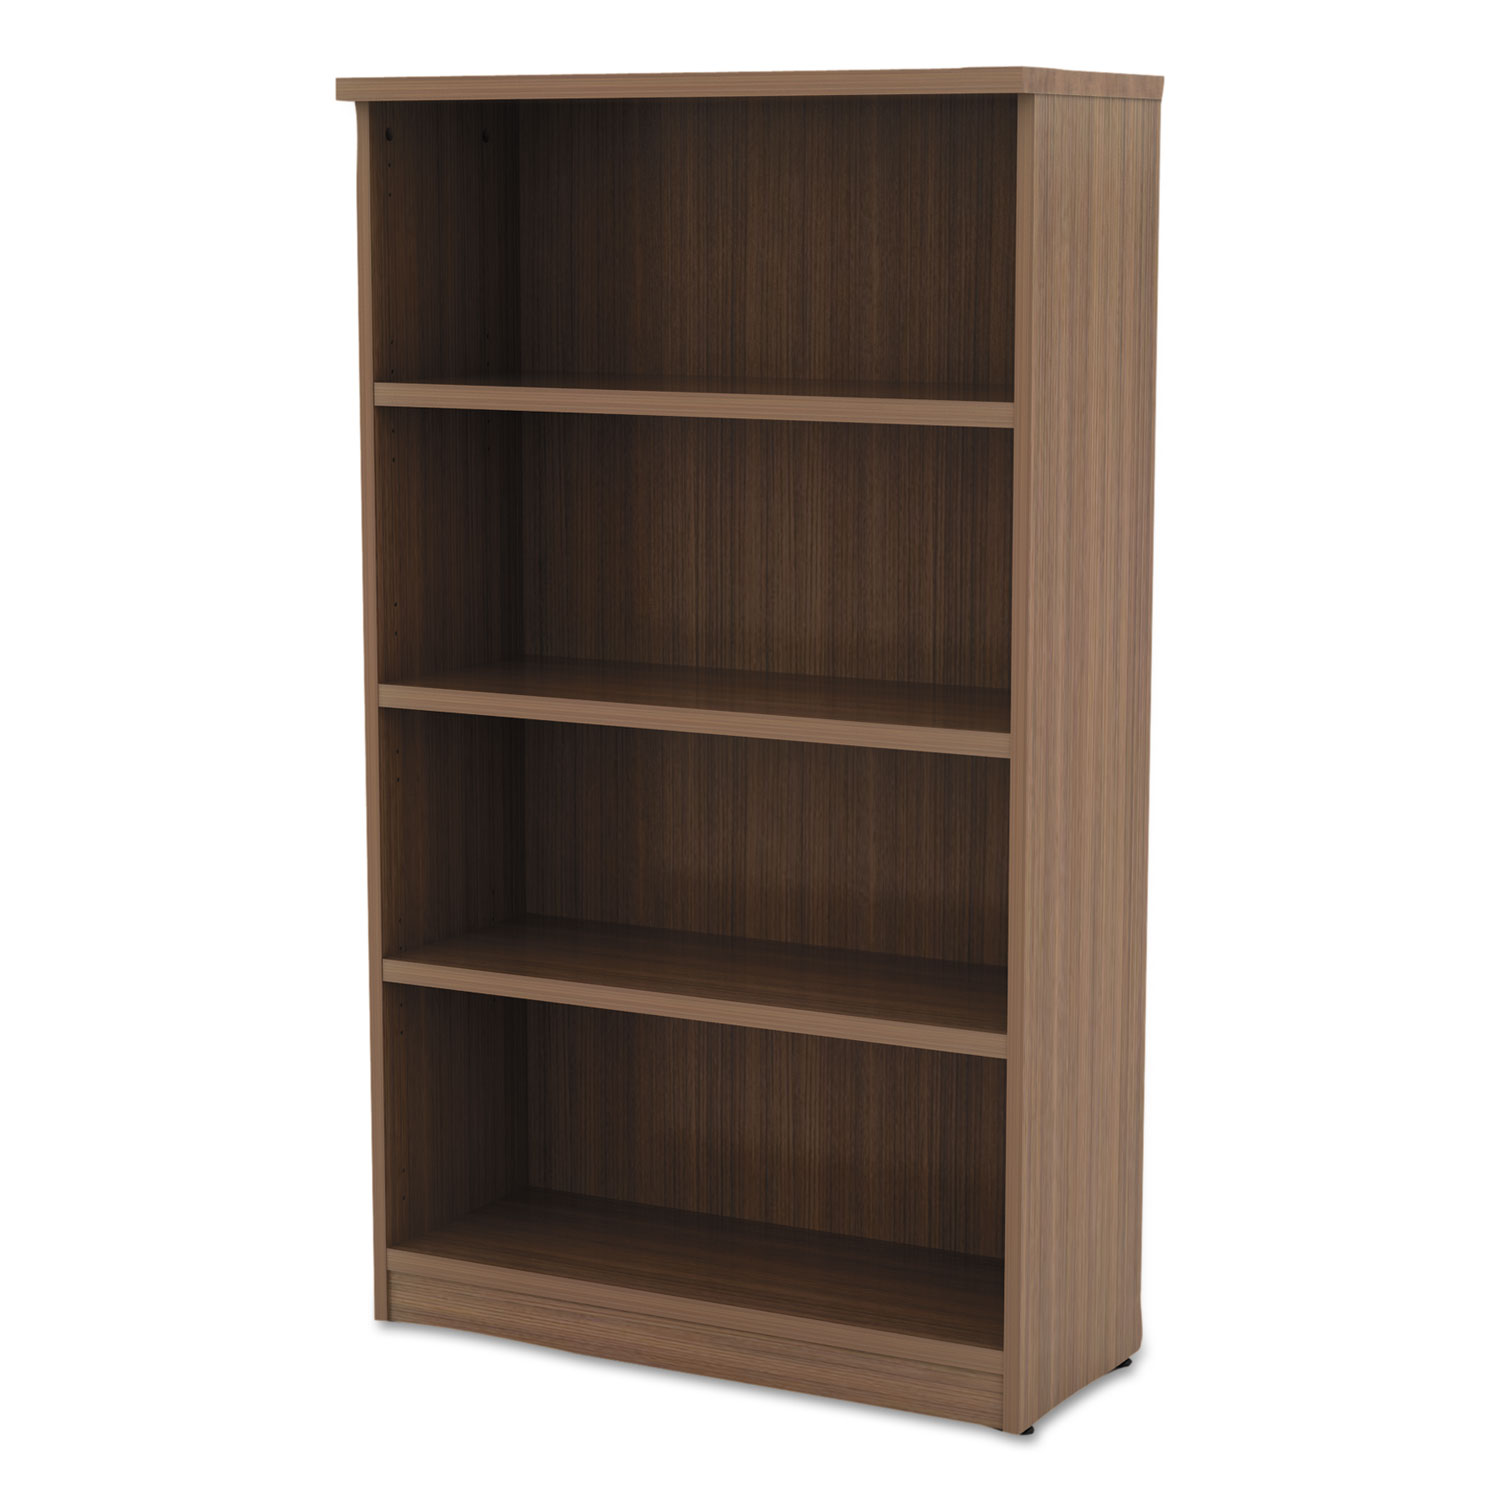 Alera Valencia Series Bookcase Four Shelf 31 3 4w X 14d X